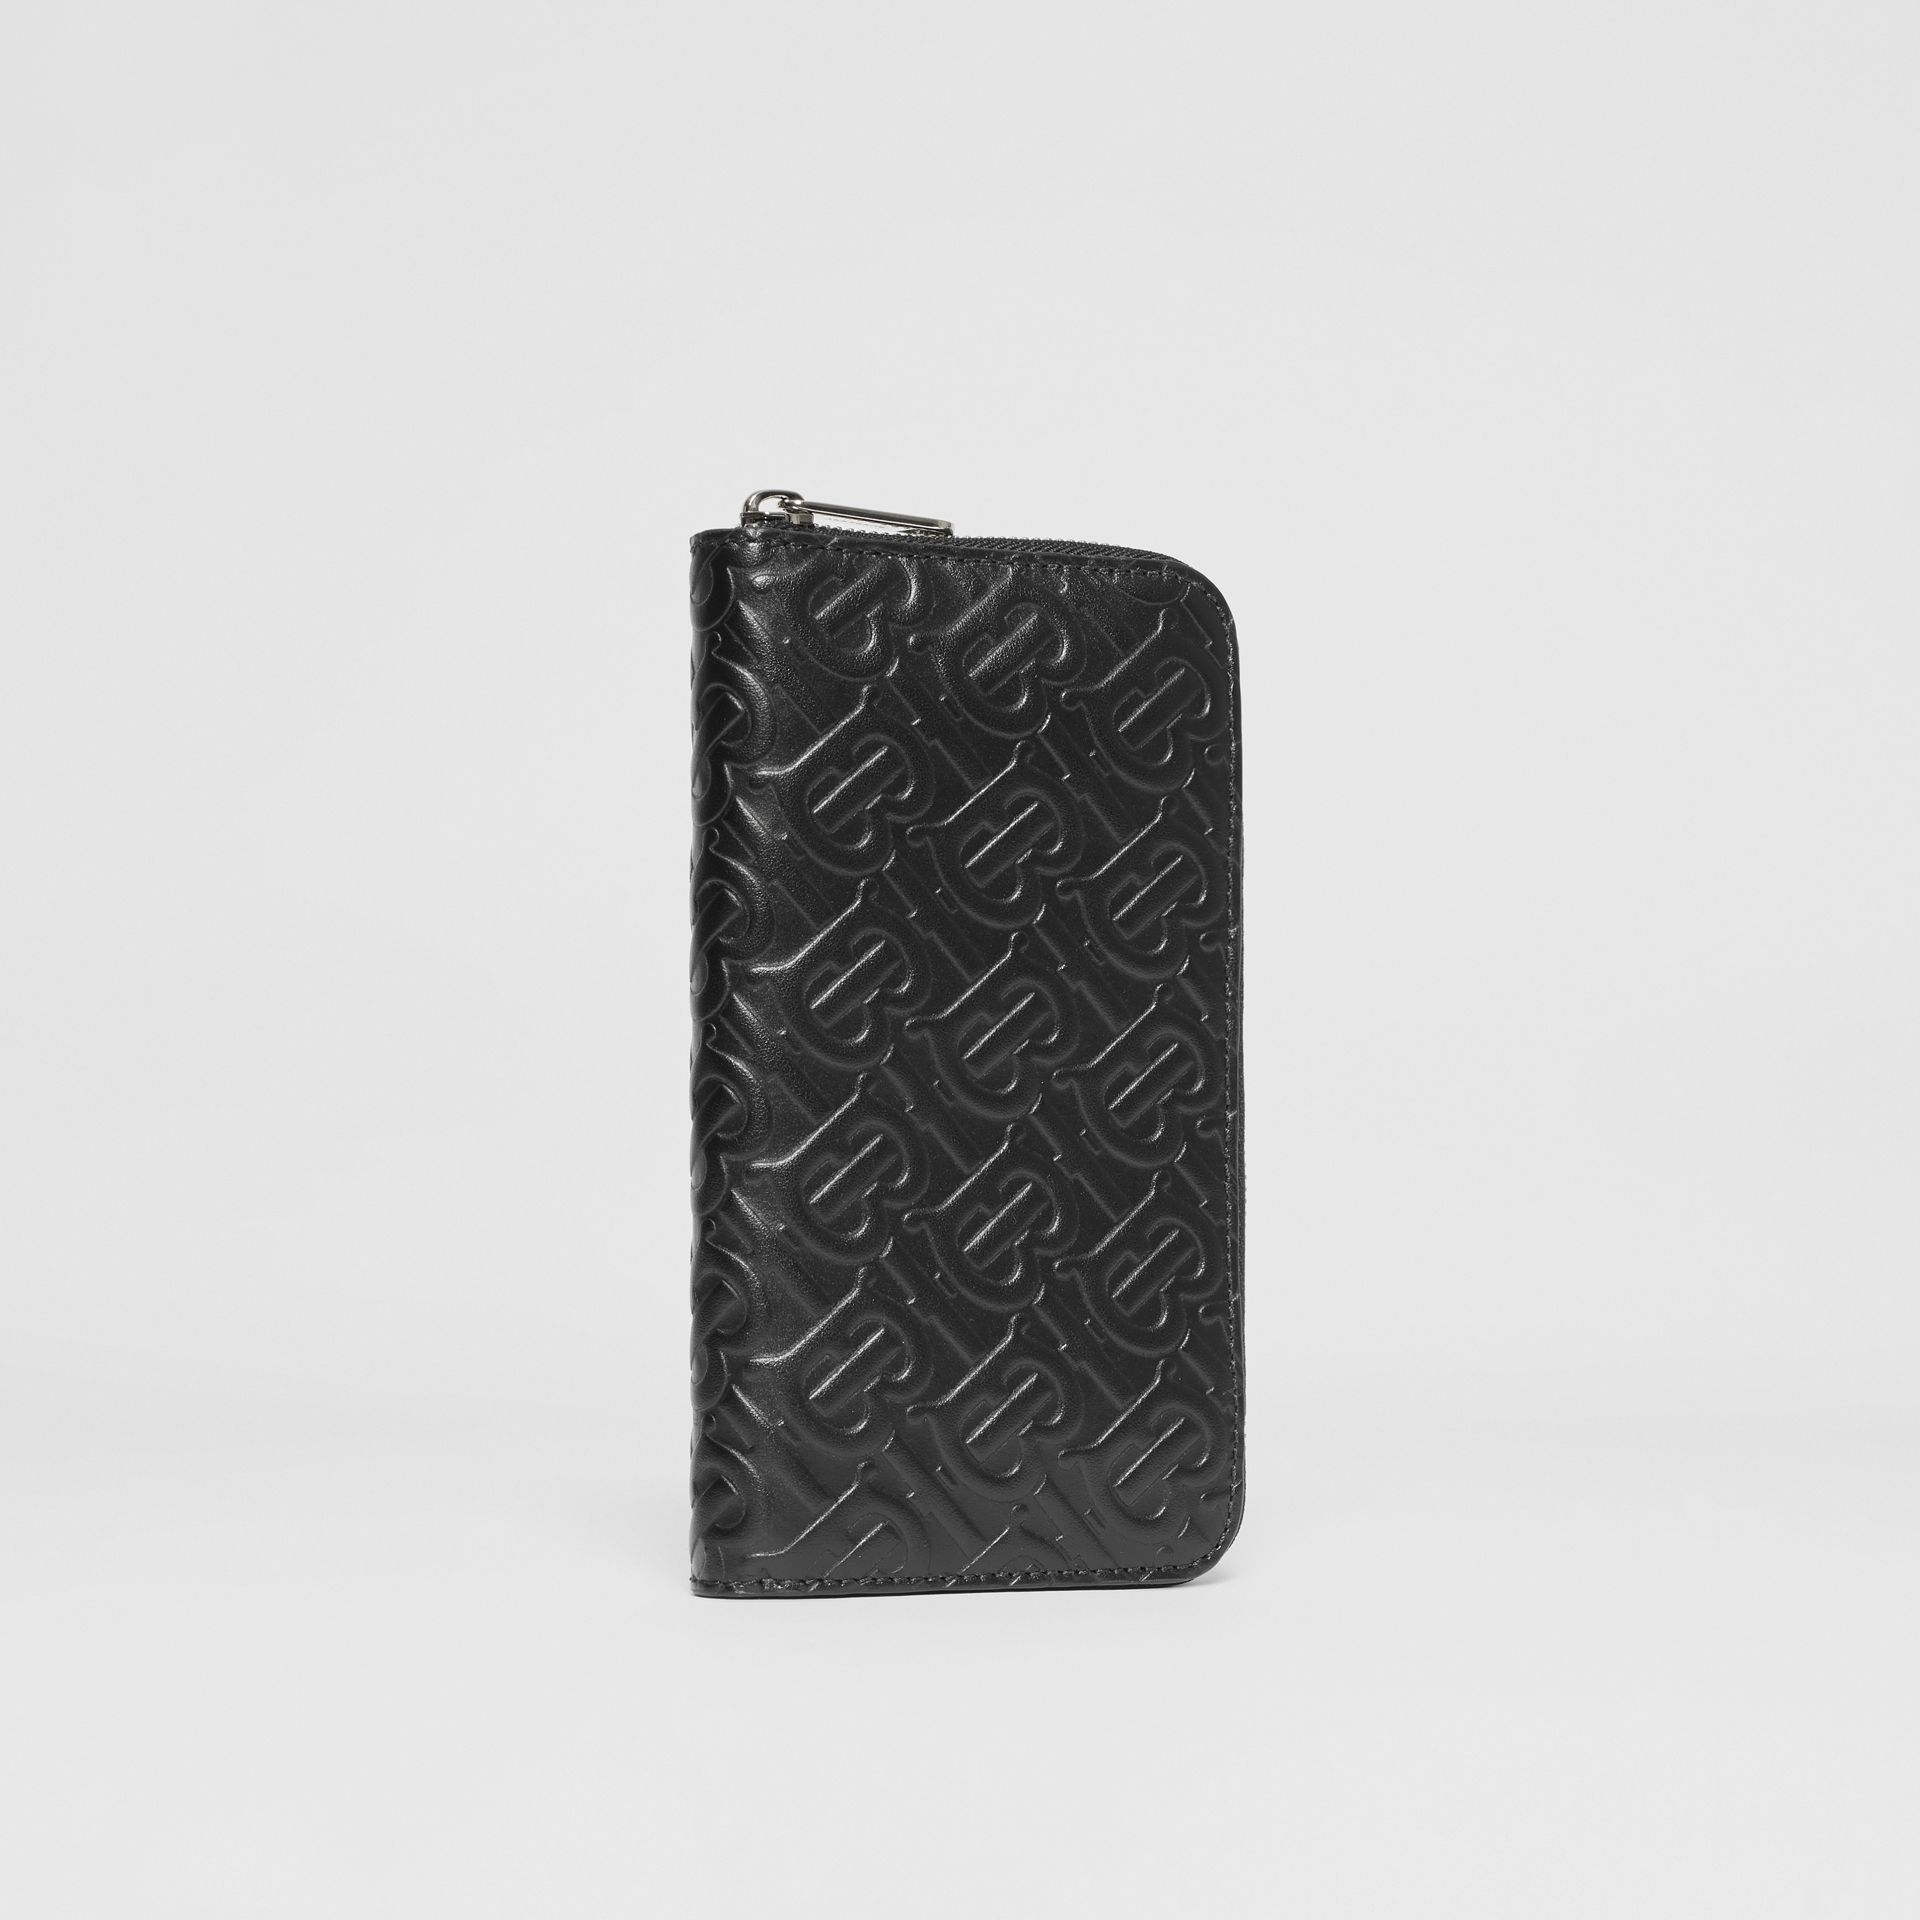 Monogram Leather Ziparound Wallet in Black - Men | Burberry - gallery image 3